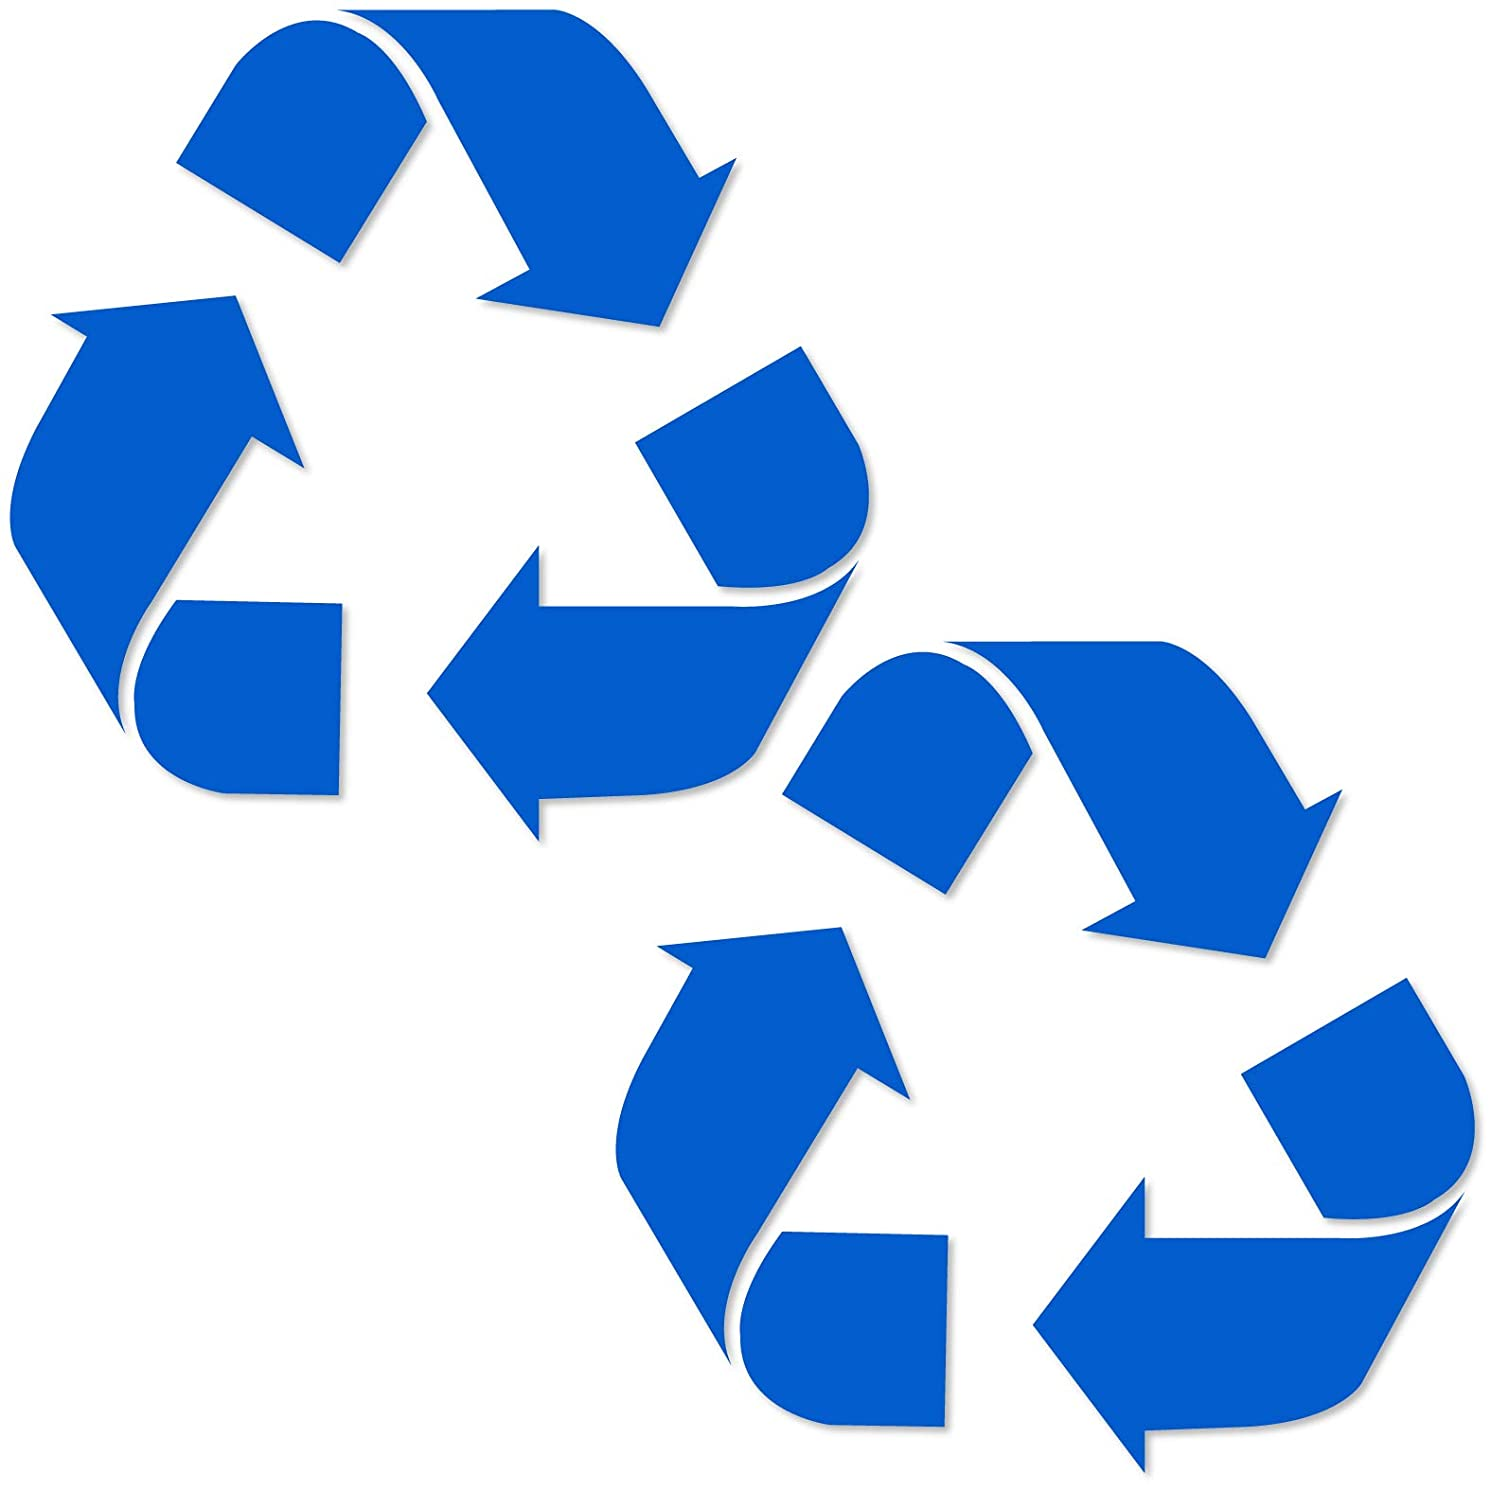 Vinyl Friend Recycle Symbol Sticker Decal (7in x 7in 2 Pack) to Organize Trash cans or Garbage containers and Walls -Countour Cut - Medium Blue Sticker